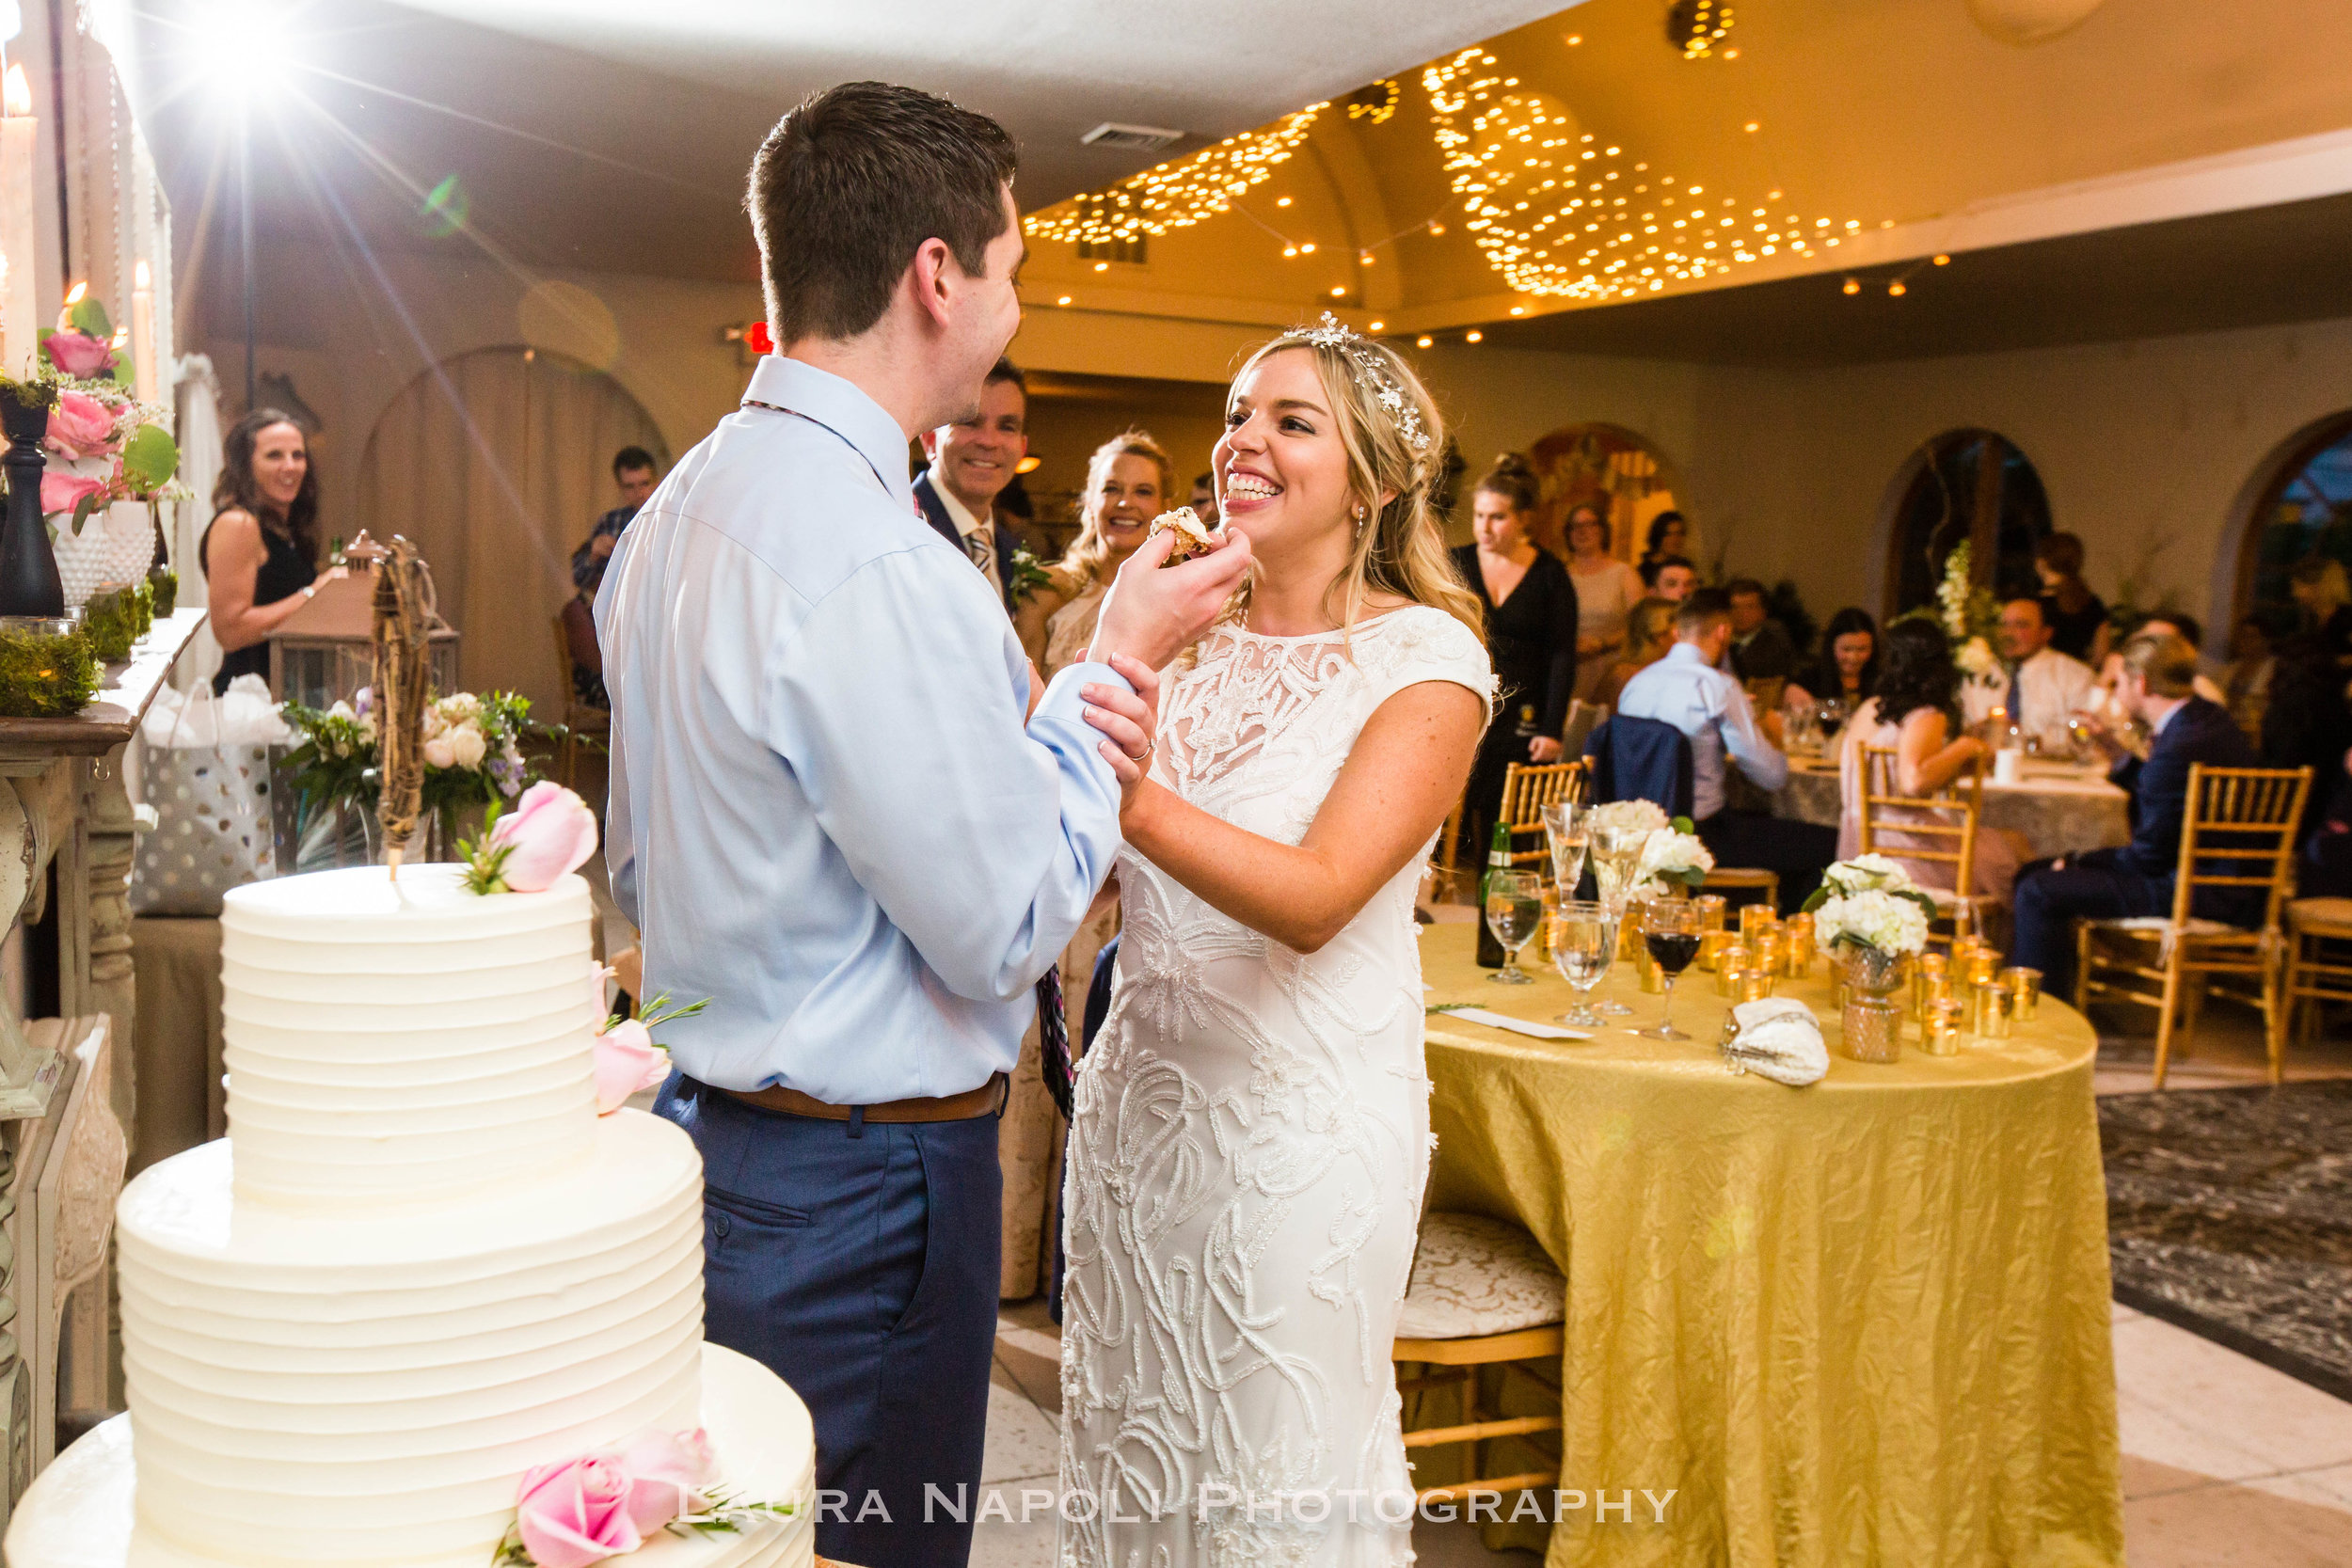 abbieholmesestateweddingcapemaynjweddingphotographer-64.jpg